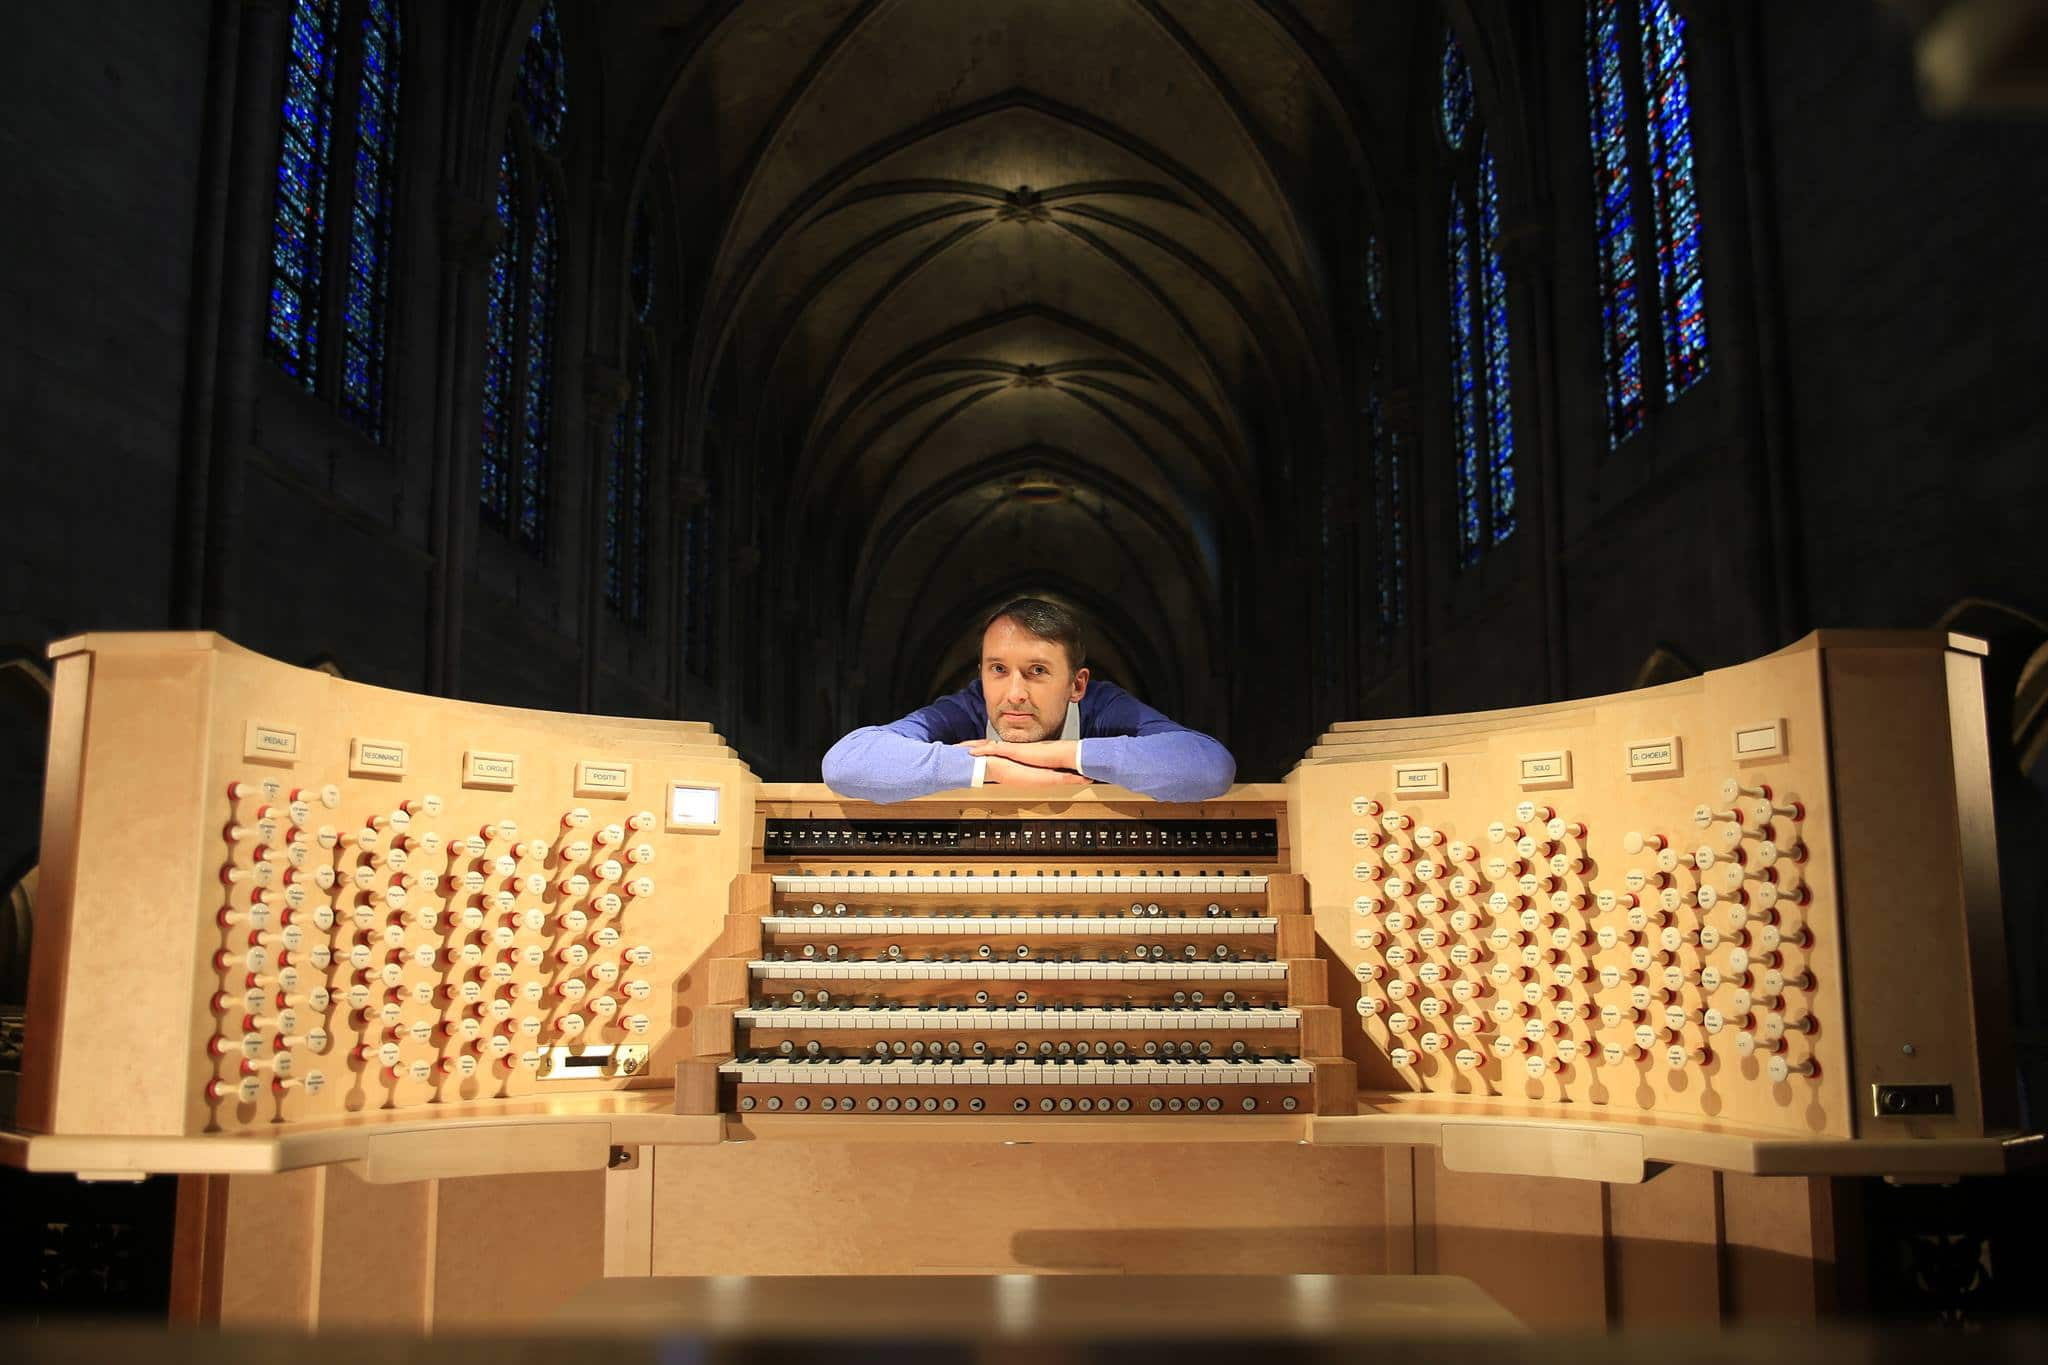 Notre Dame organist is in Germany, raising funds